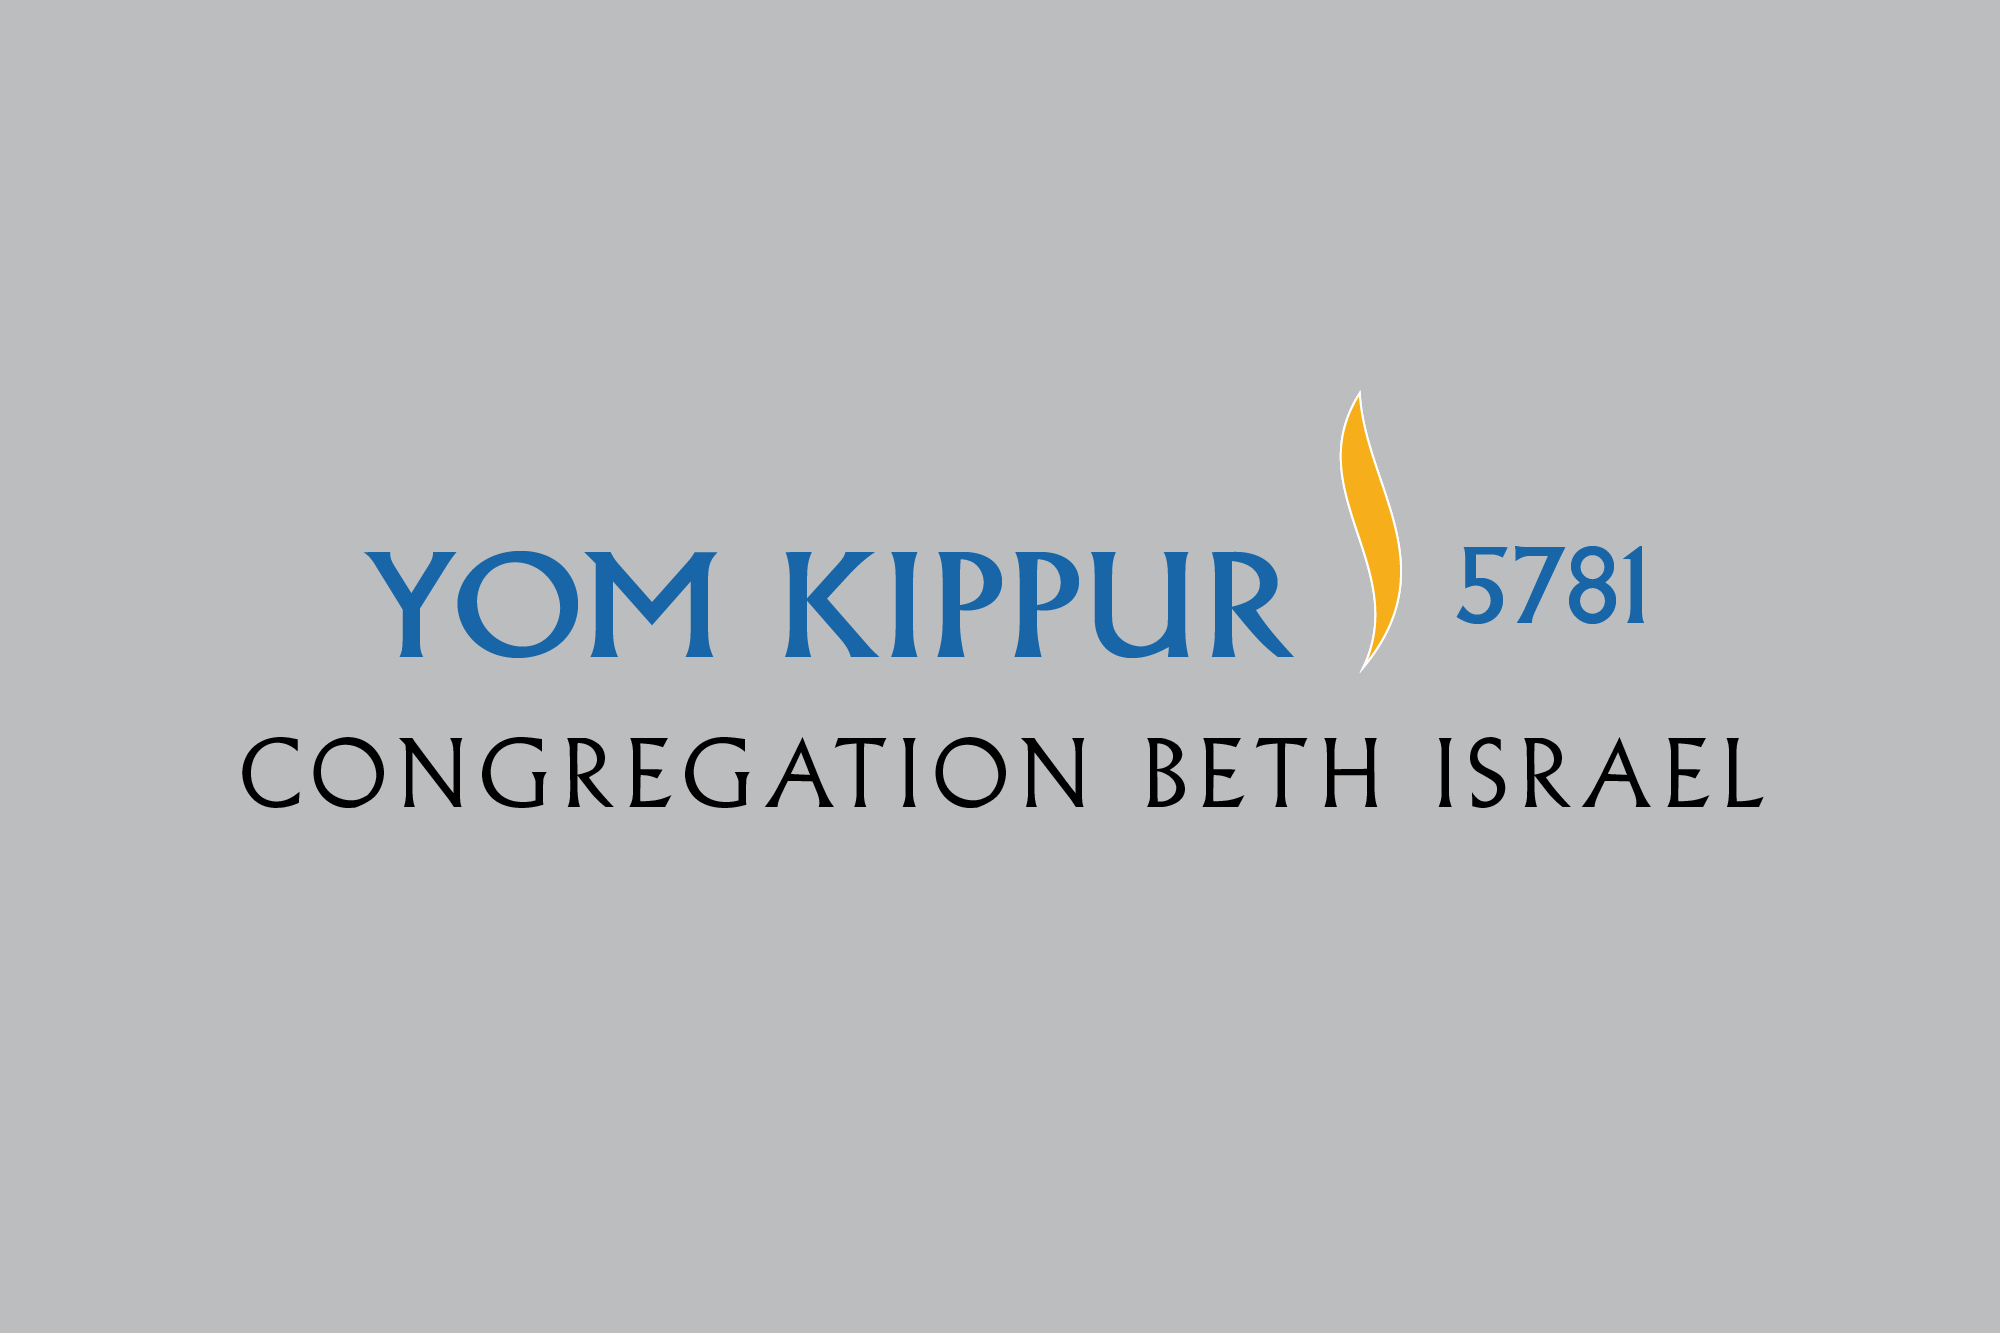 Yom Kippur Archive Page <Lock for Editing>